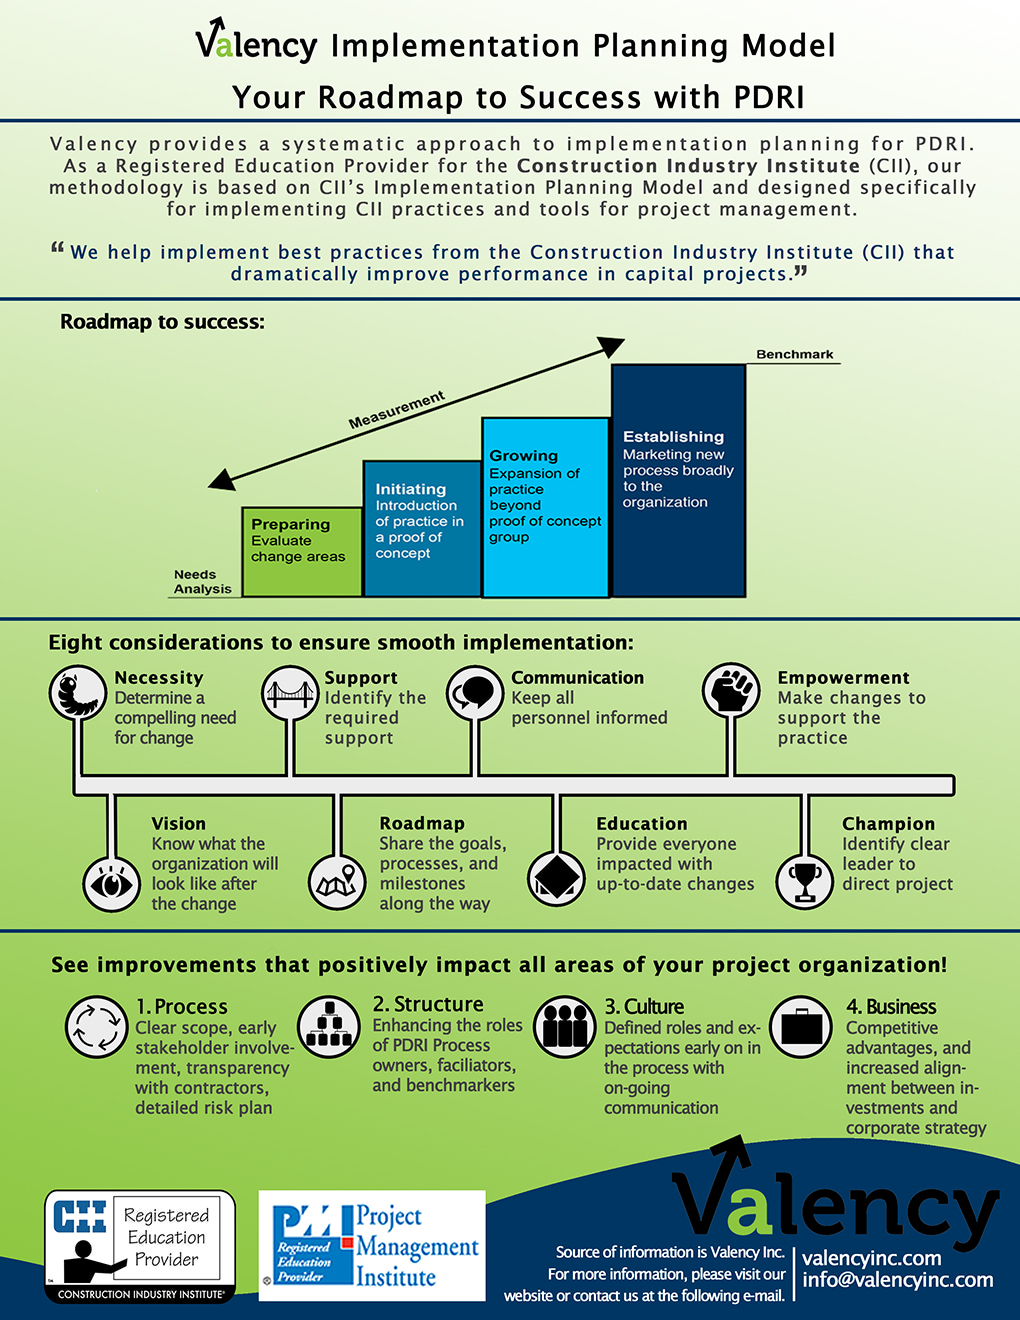 Implementing Change? A roadmap to success [Infographic]